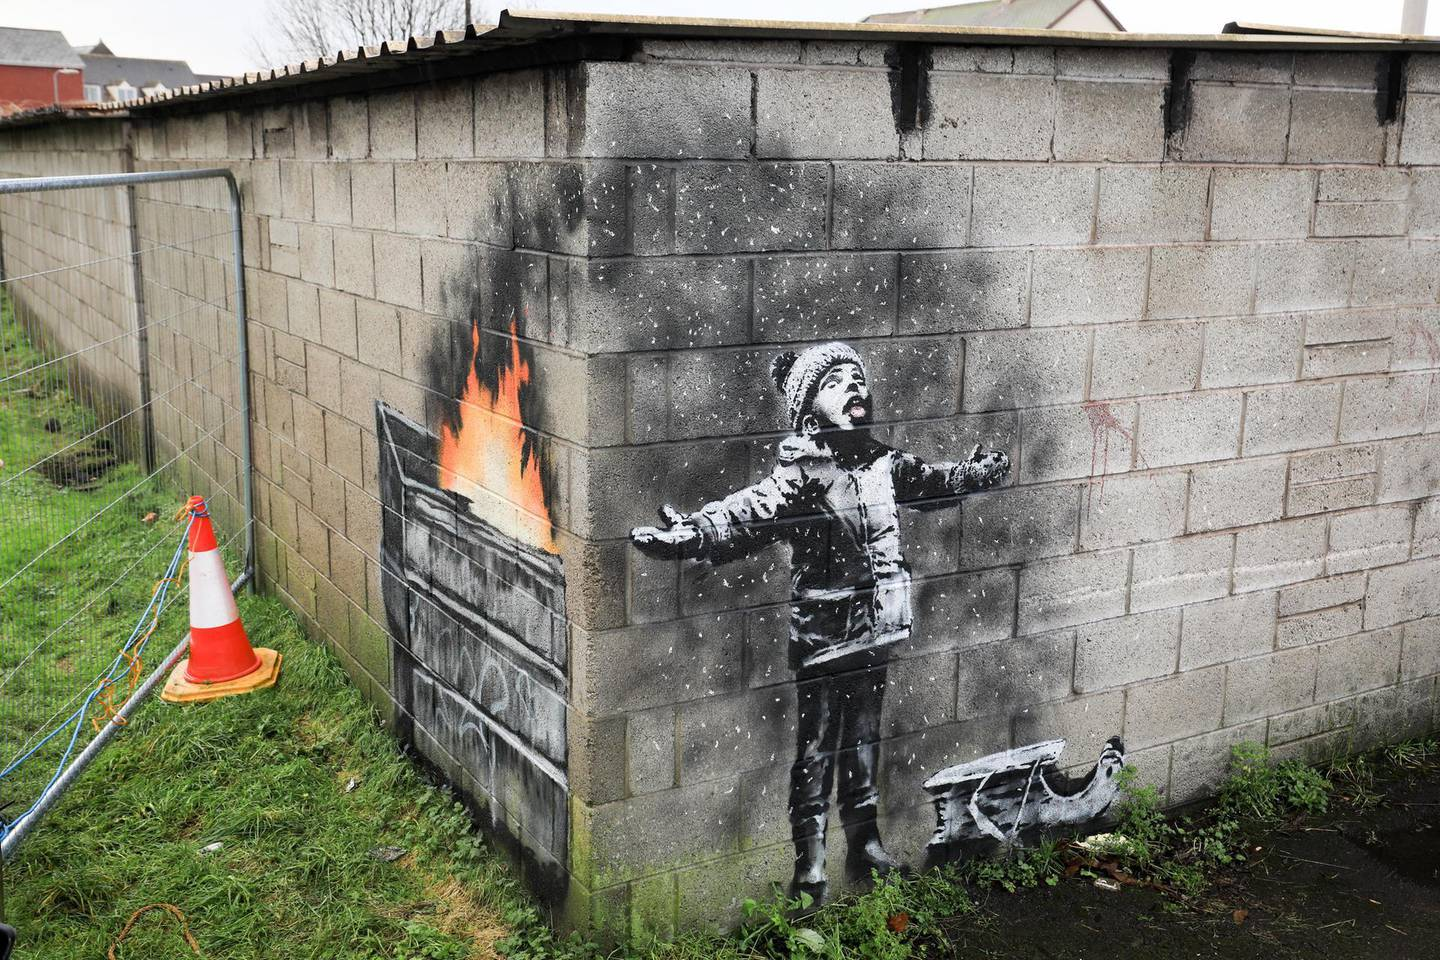 """PORT TALBOT, WALES - DECEMBER 20: People gather around fences that have been erected to protect the latest  piece of artwork by the underground guerrilla artist Banksy on December 20, 2018 in Port Talbot, Wales. The British graffiti artist who keeps his identity a secret, confirmed yesterday that the artwork was his using his verified Instagram account to announce """"Season's greetings"""" with a video of the artwork in Port Talbot. (Photo by Matt Cardy/Getty Images)"""